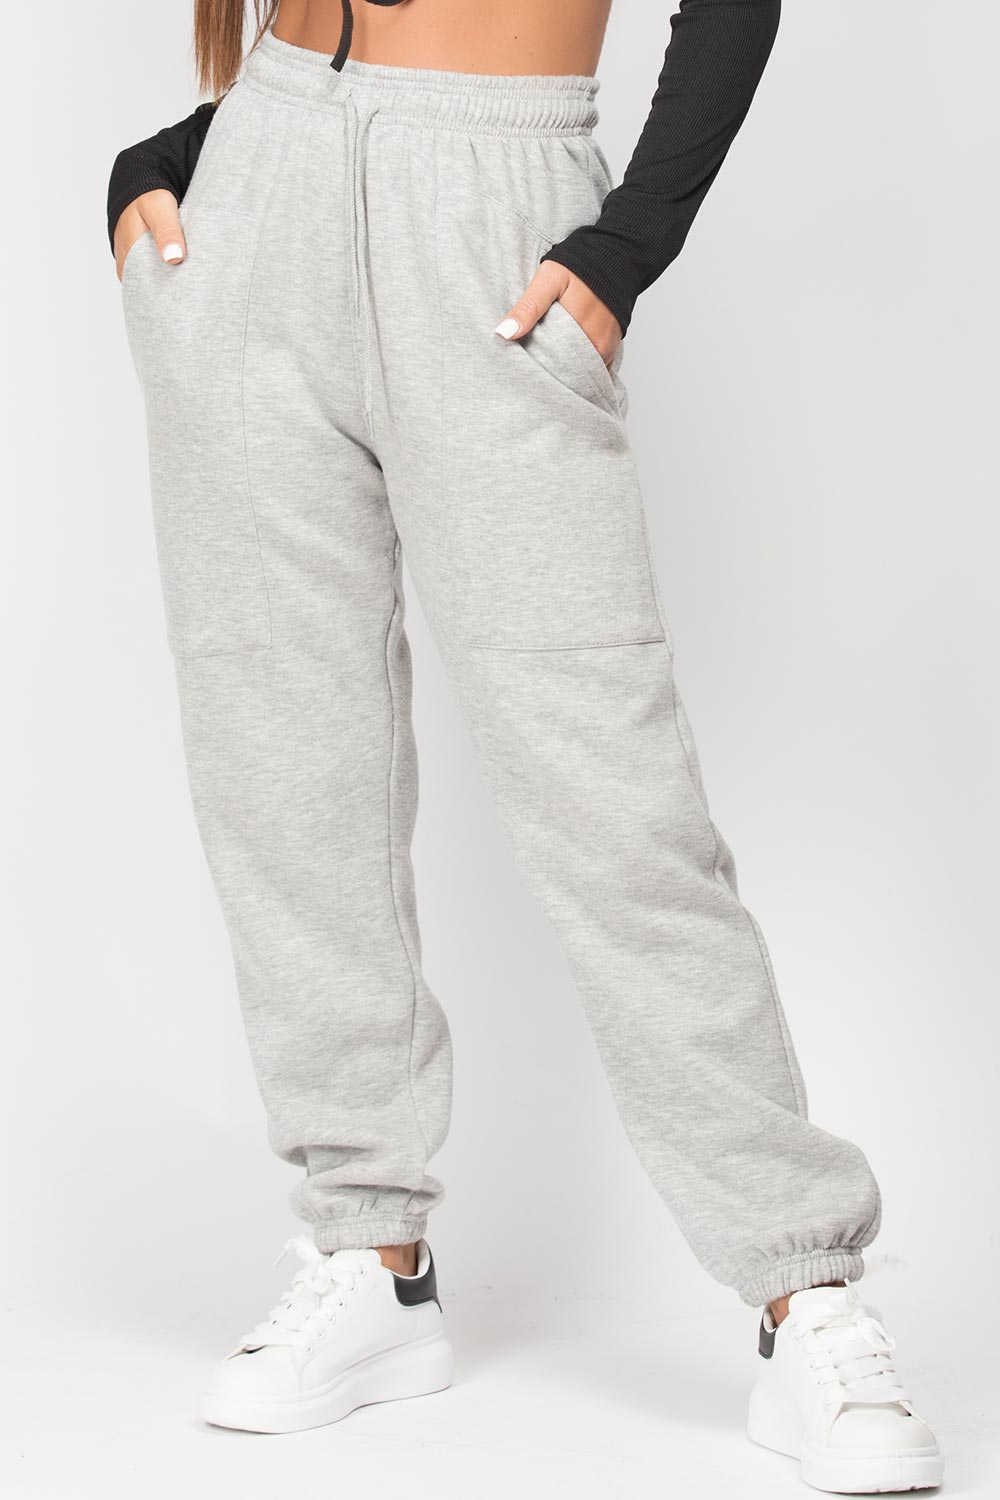 high waisted grey joggers womens